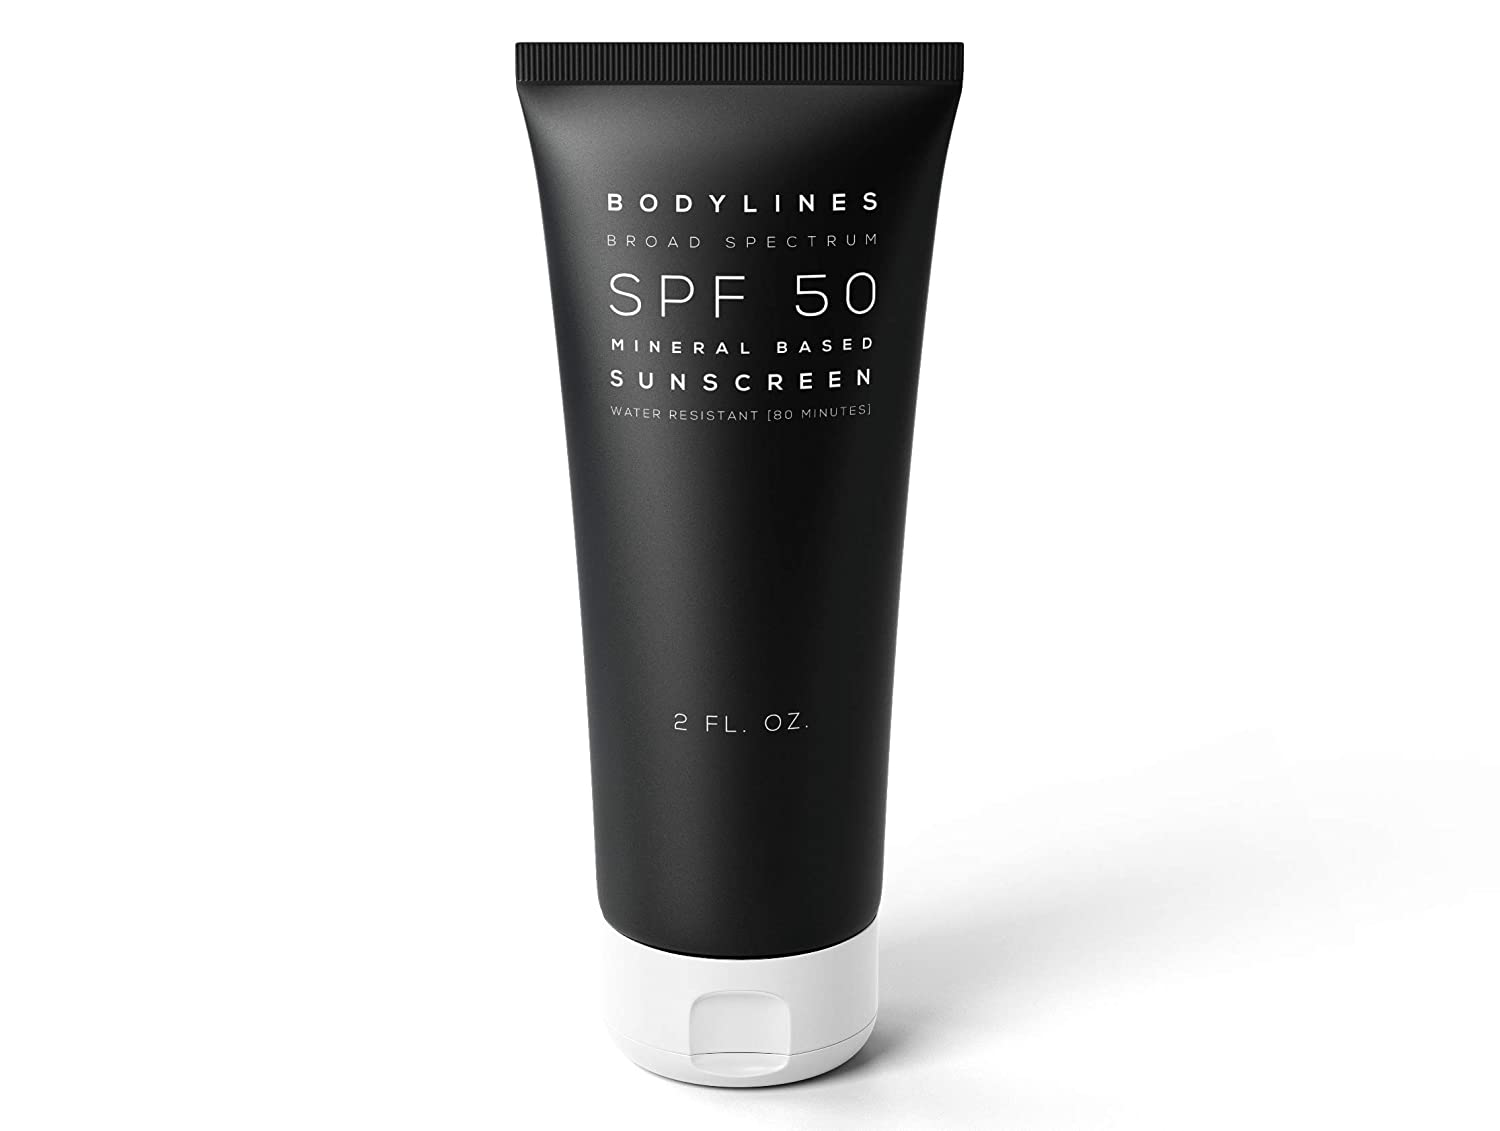 Bodylines Non Nano Zinc & Titanium Sunscreen, SPF50 Sensitive Skin, Vegan, Natural Chemical Free Reef Safe Mineral Facial Sunscreen, Broad Spectrum UVA/UVB Protection, Water Resistant, Daily Use, 60ml